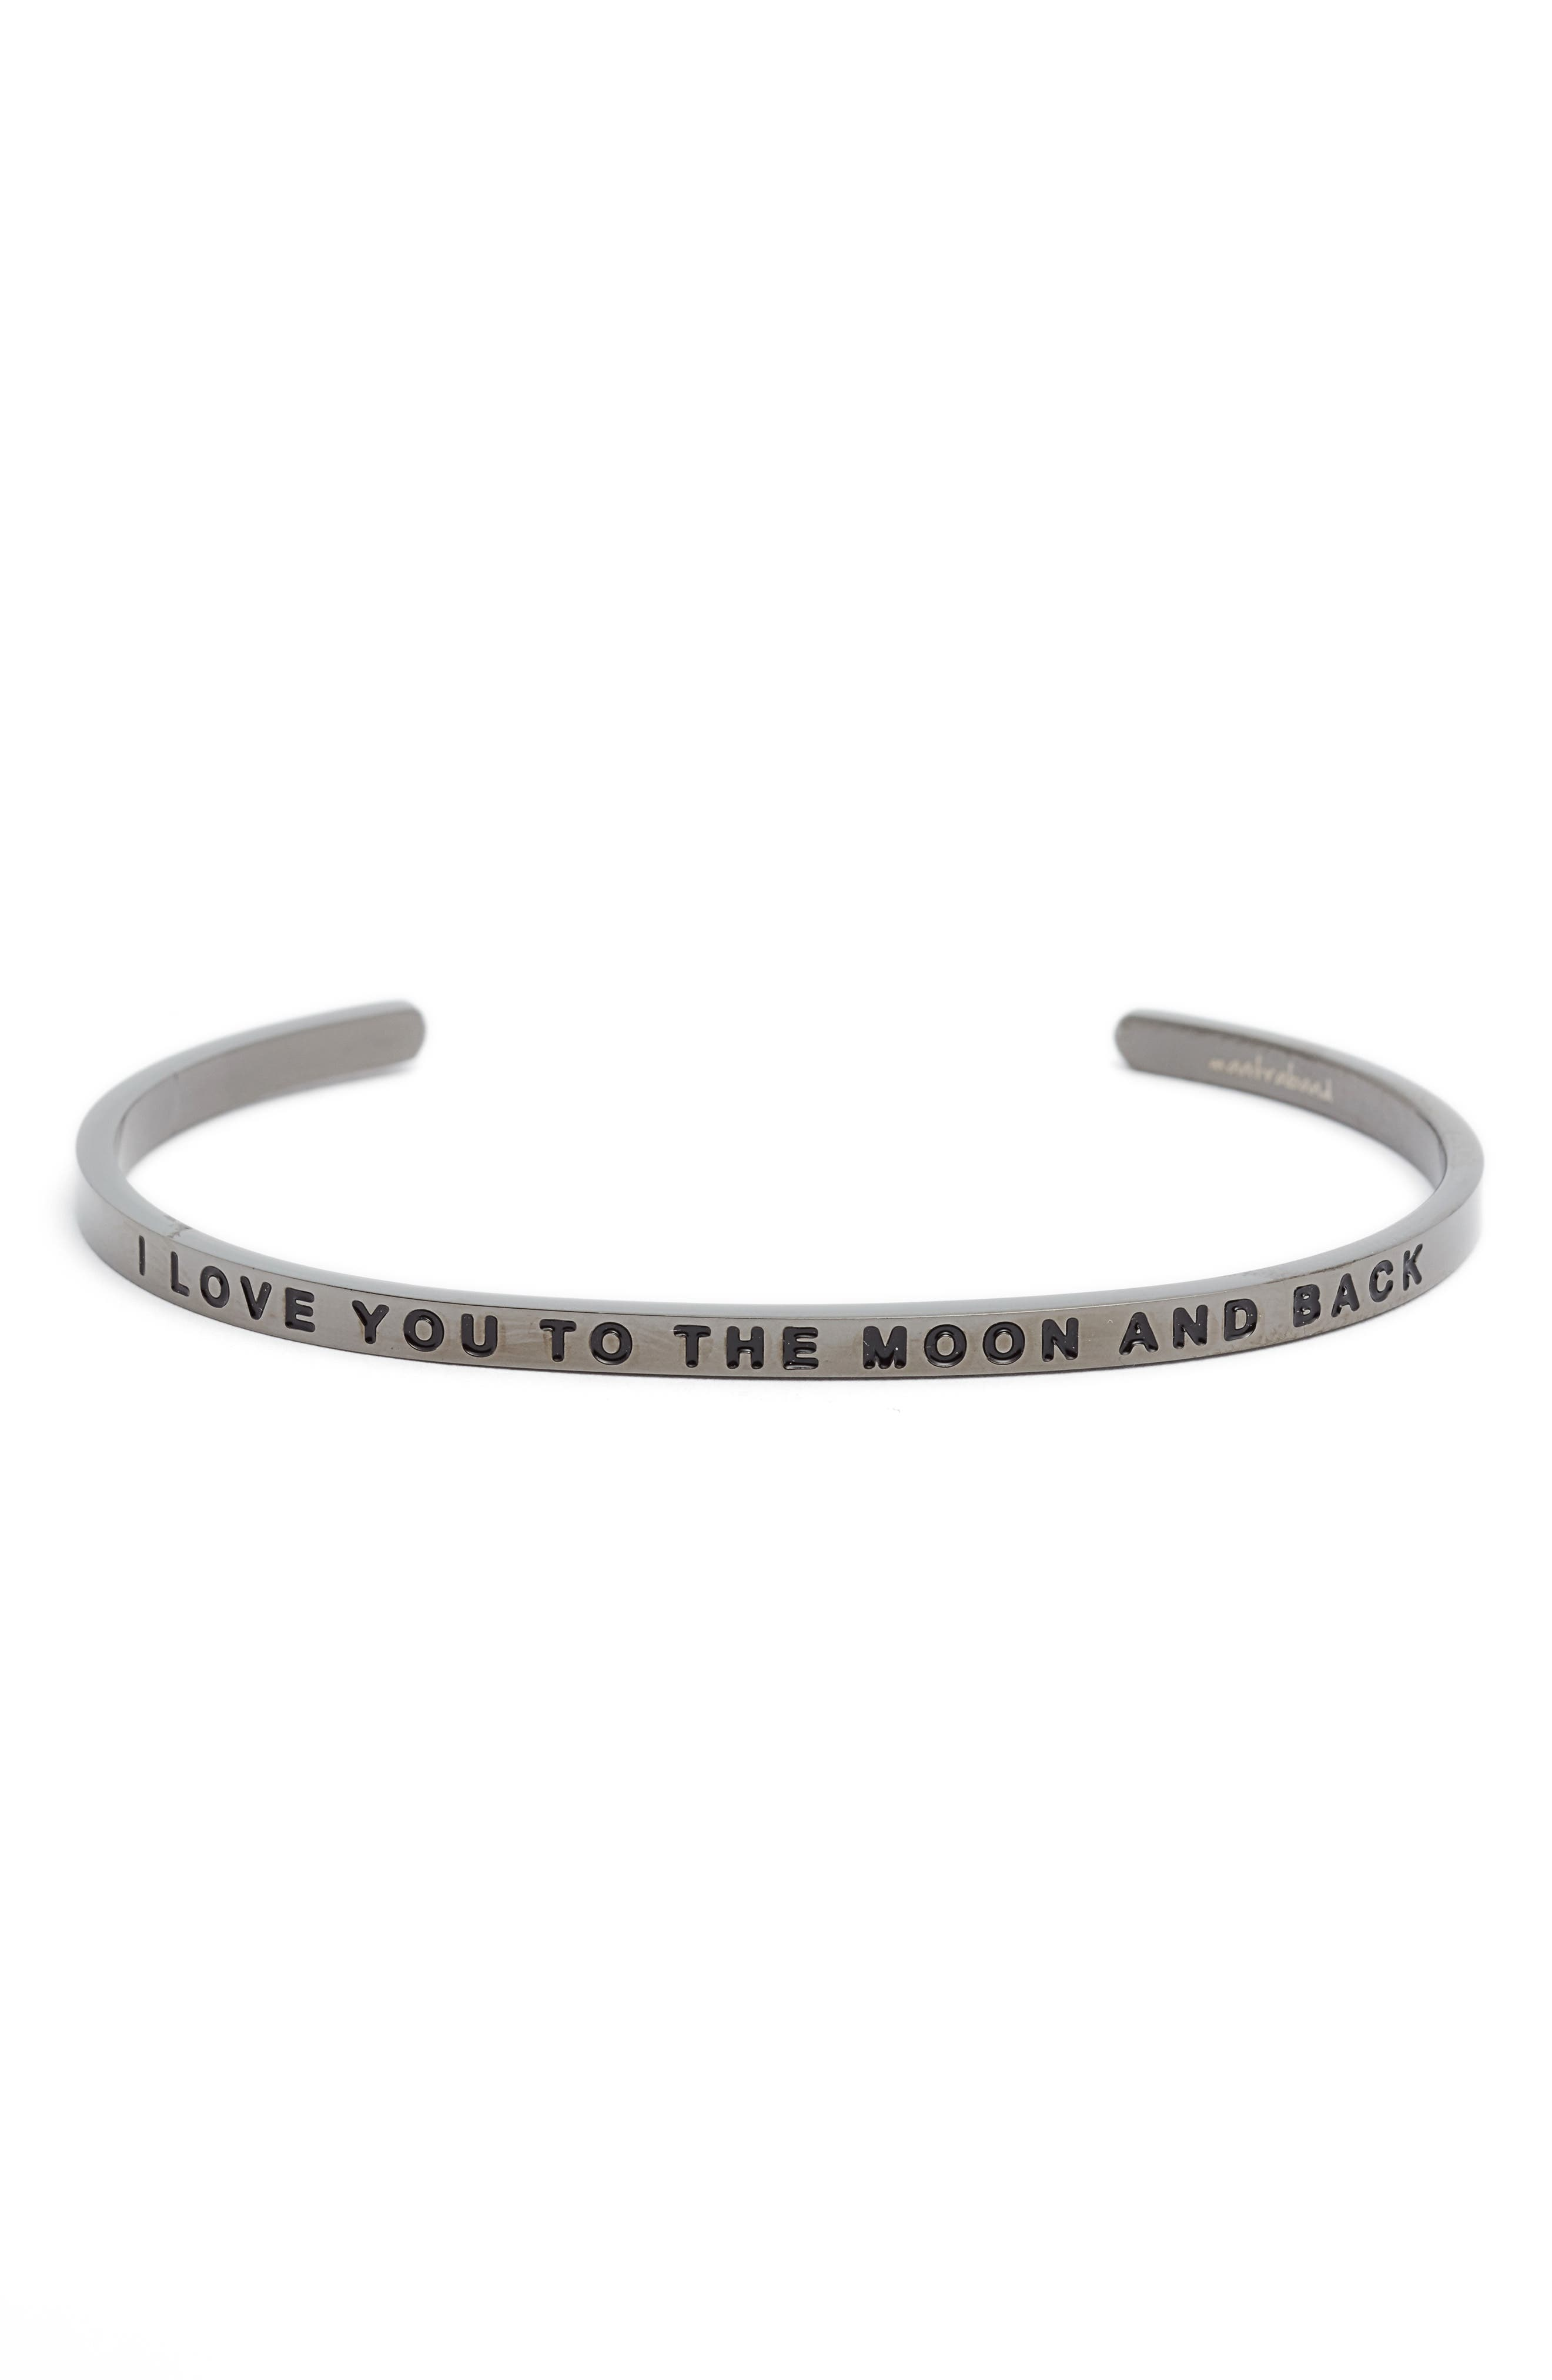 'I Love You to the Moon and Back' Cuff,                         Main,                         color, MOON GRAY